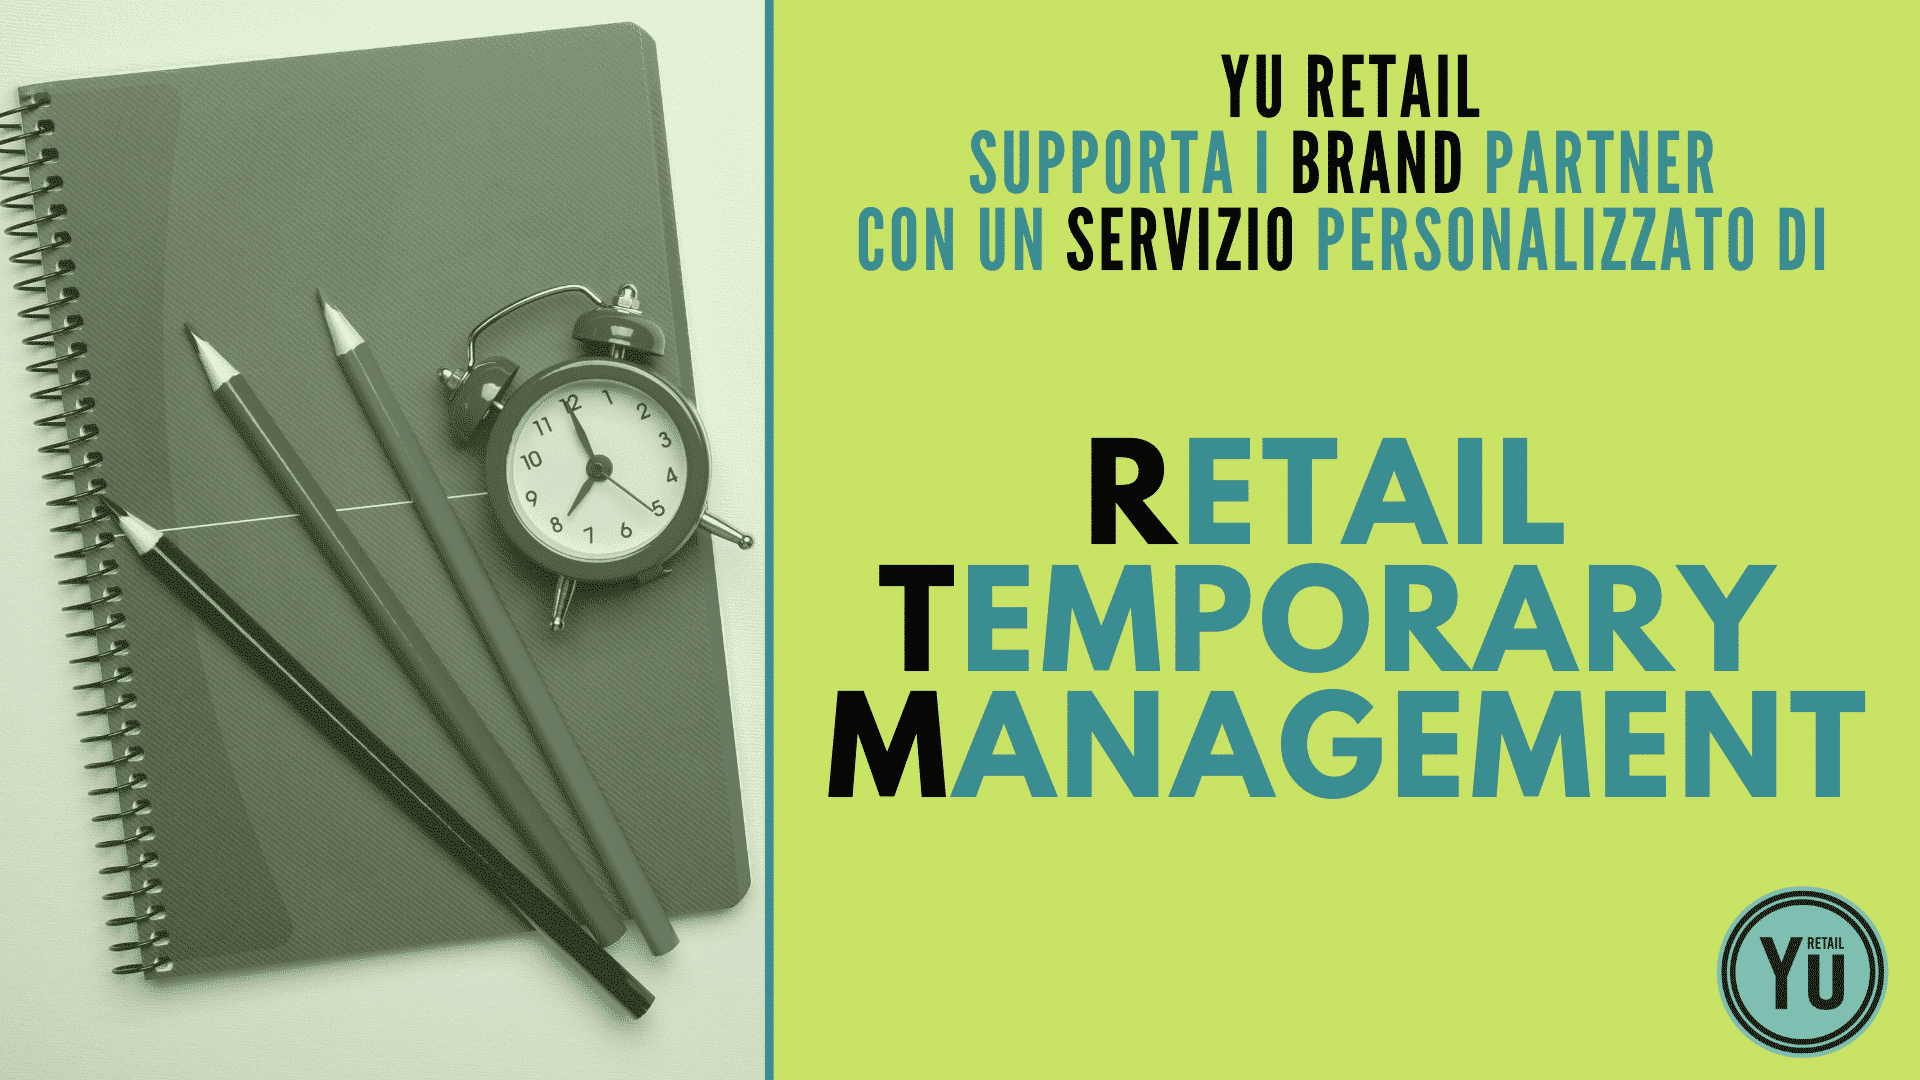 Yu Retail Your Temporary Manager